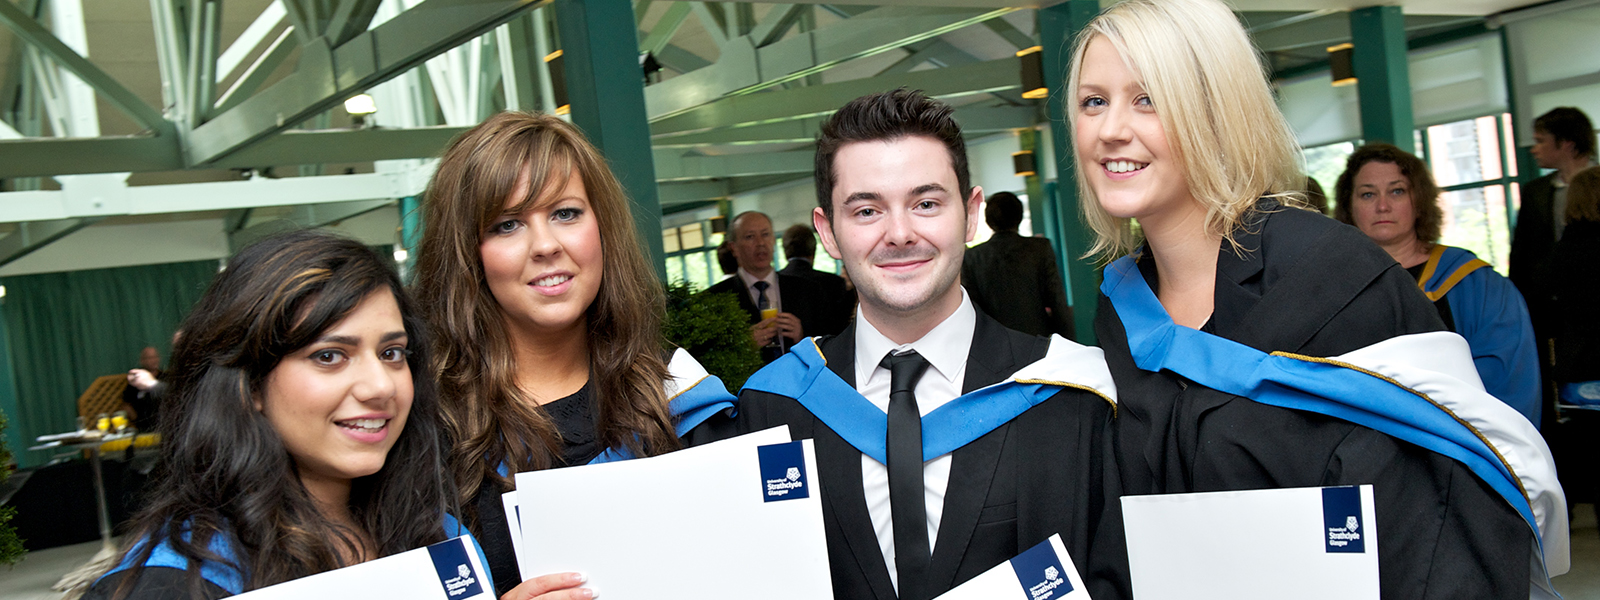 Graduates from Strathclyde's Faculty of Humanities & Social Sciences